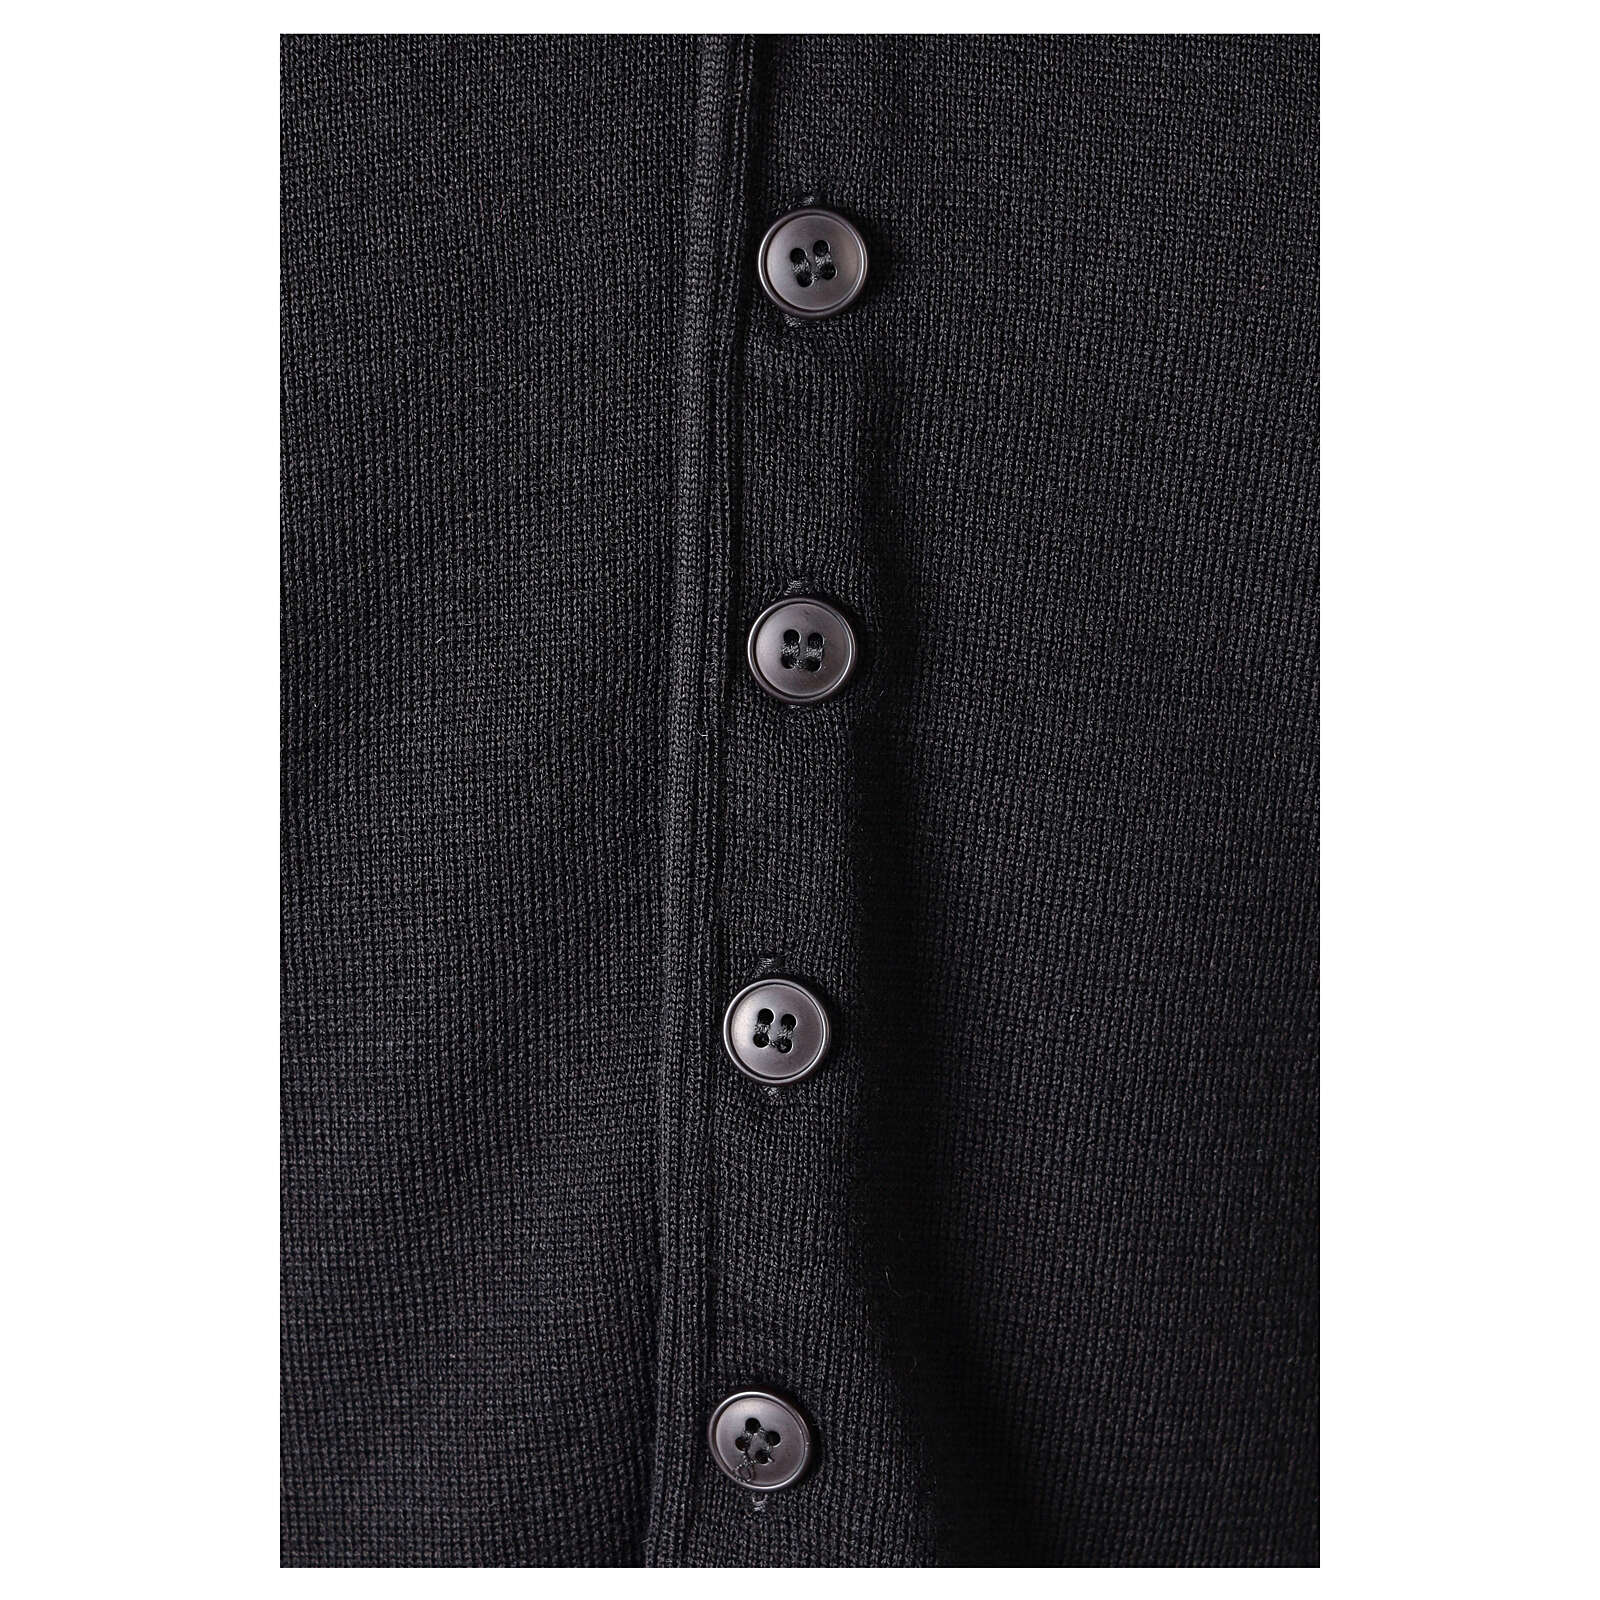 Clergy sleeveless black cardigan 50% merino wool 50% acrylic In Primis 4